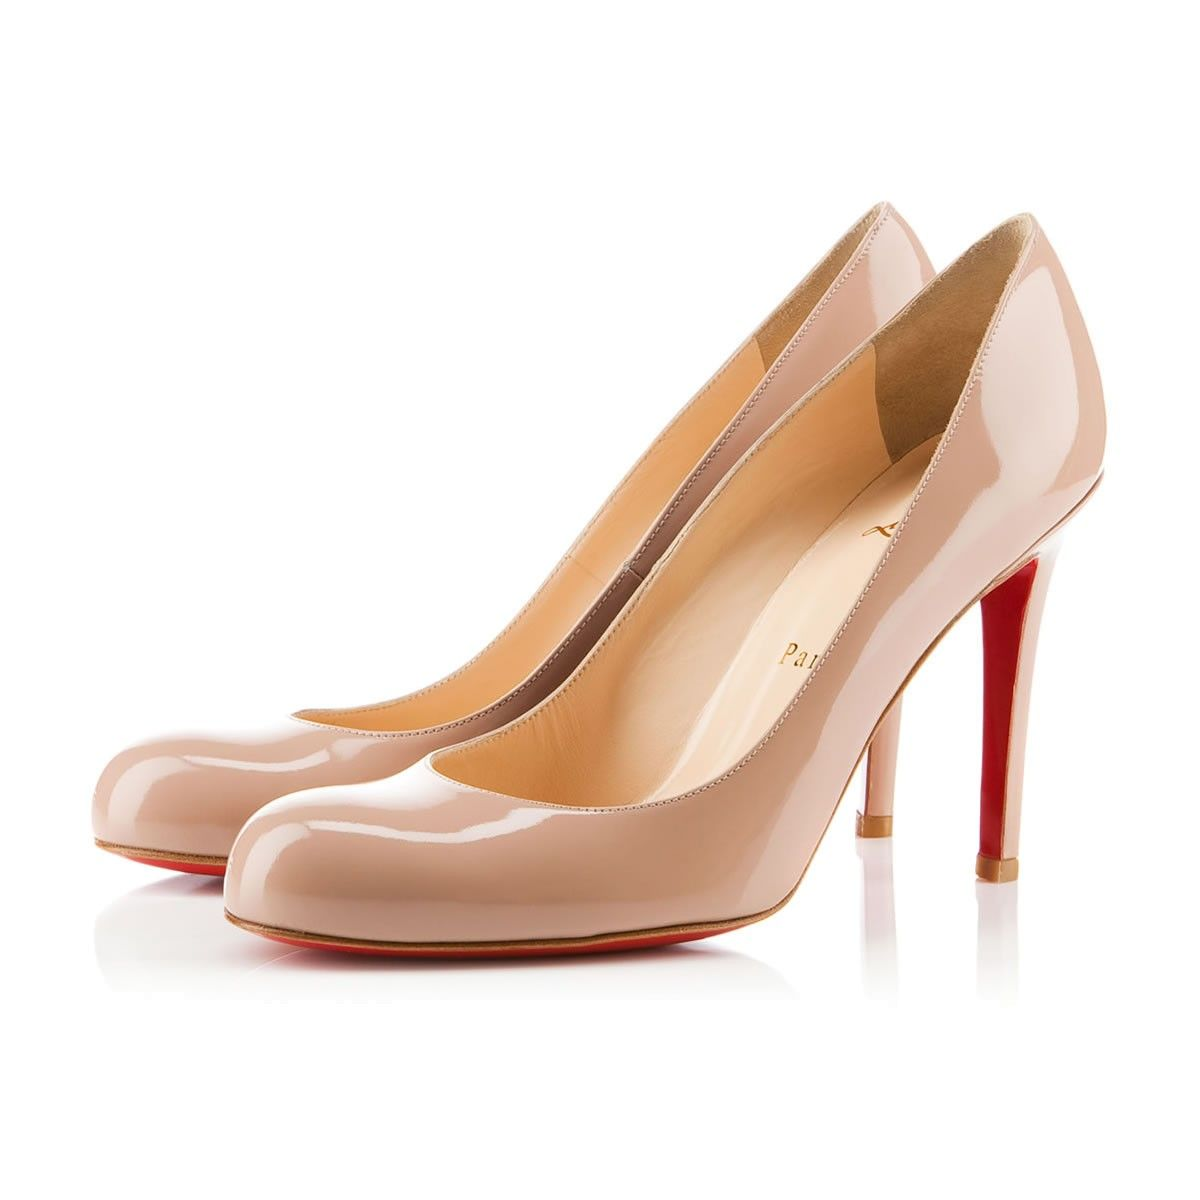 Simple Pump 100 Nude 6248 Patent Leather - Women Shoes - Christian Louboutin